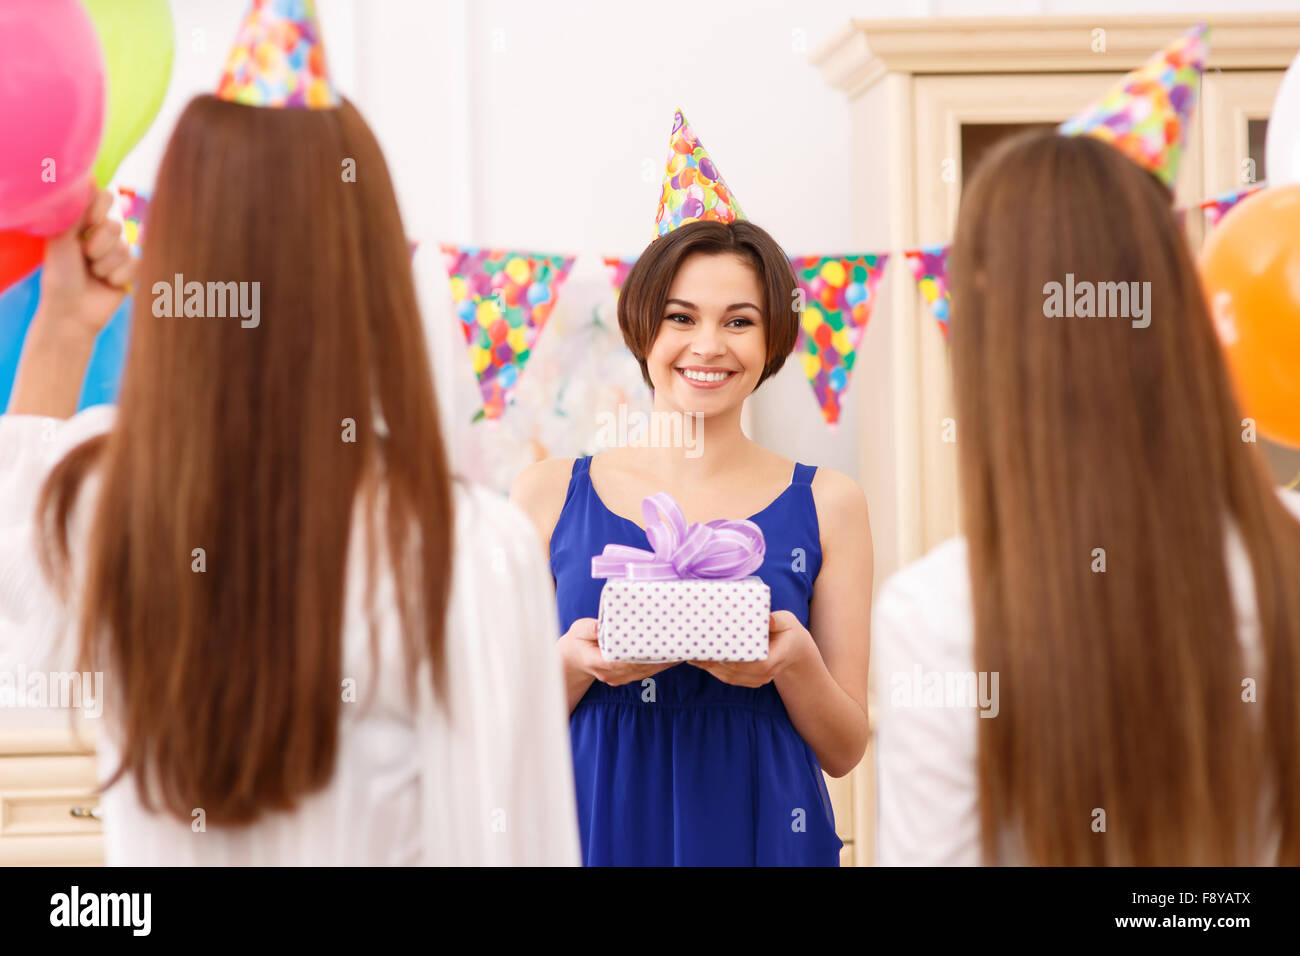 Happy young girl holding a birthday gift - Stock Image